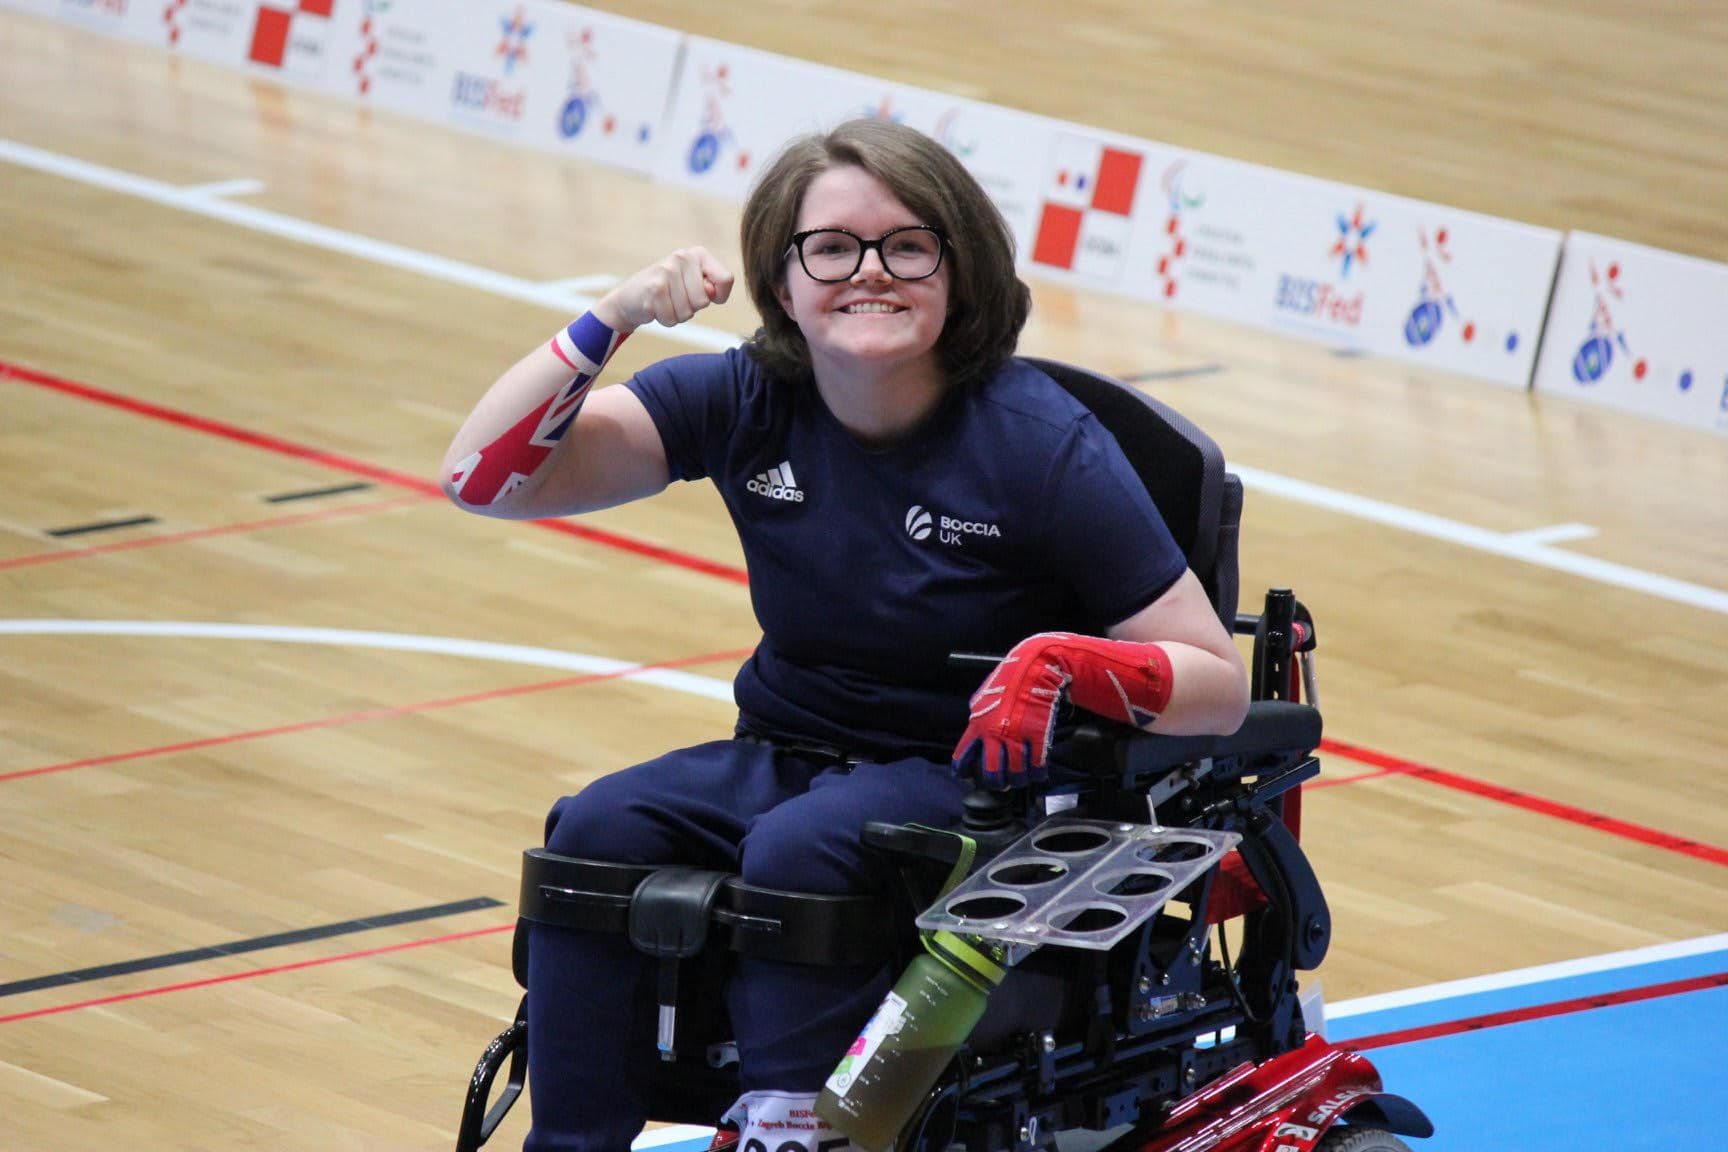 Claire Taggart playing Boccia